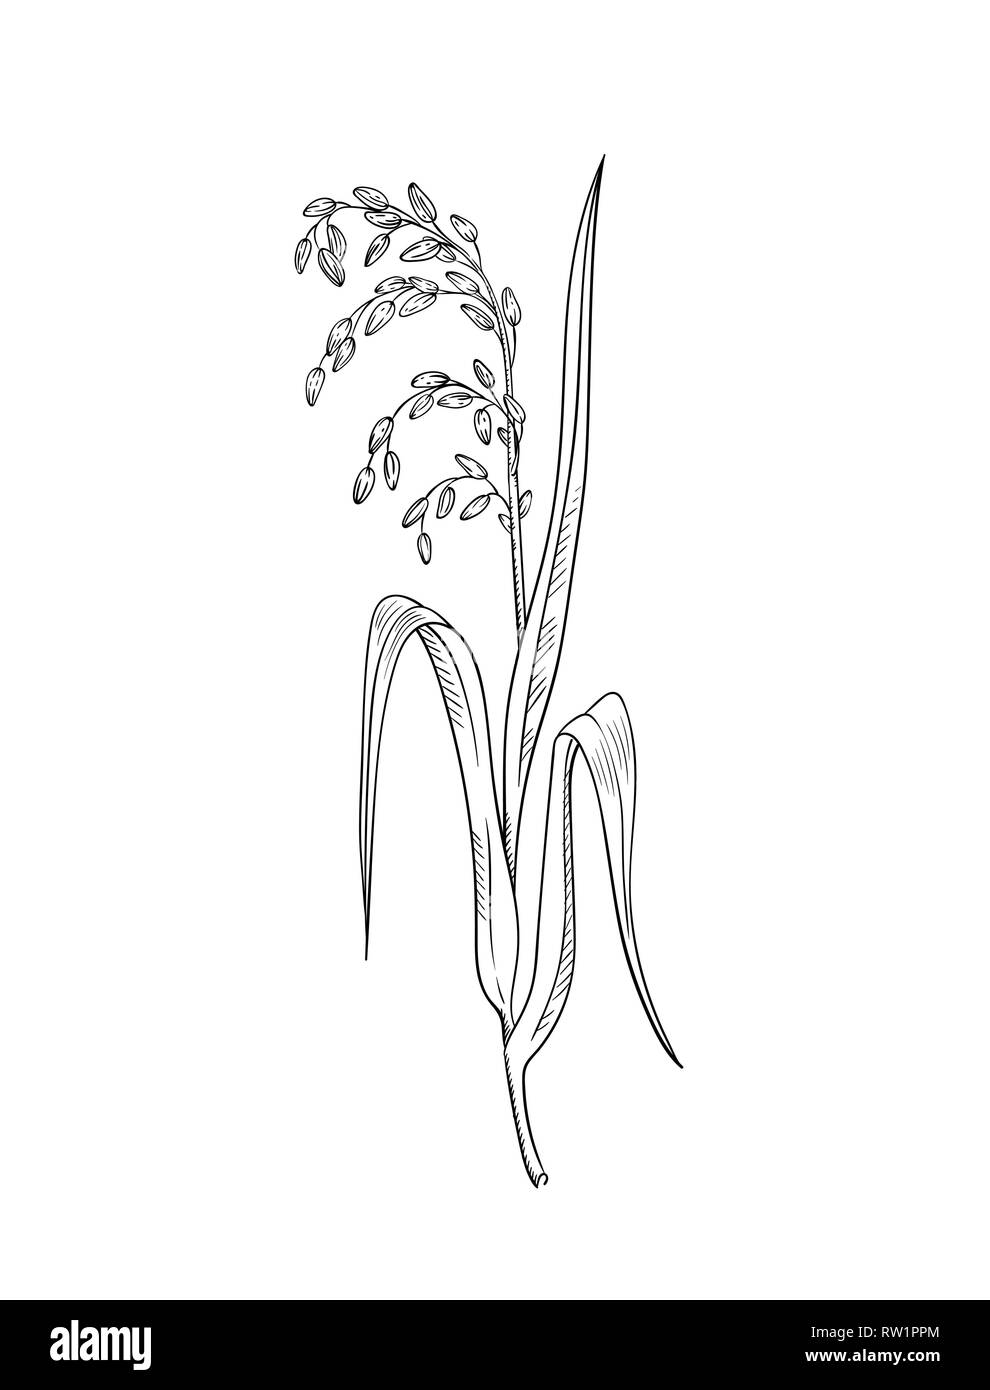 medium resolution of rice plant botanical illustration vector sketch of rice twig with leaves and earof ripe grains isolated